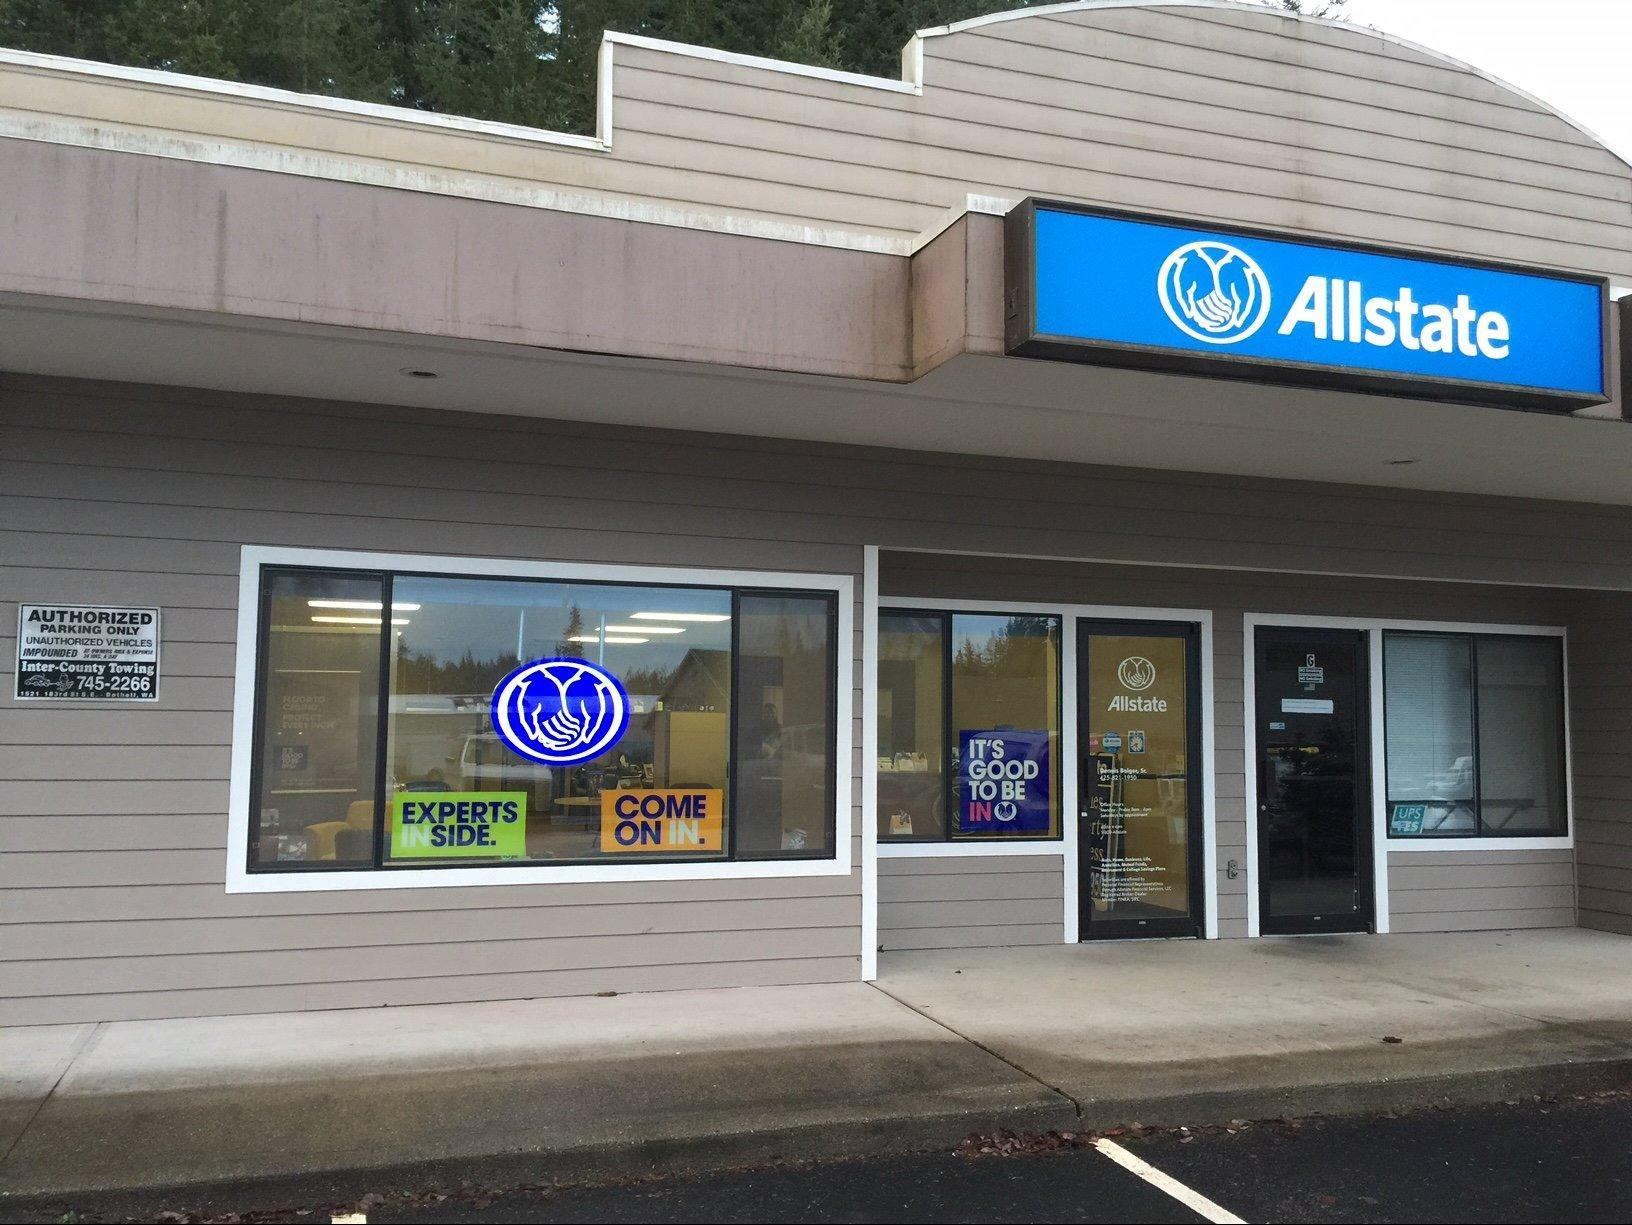 Allstate Insurance Agent Dennis Bolger, Lynnwood. Car Dealerships In Springfield Ma. How To Learn Military Time Custom Design Pens. Schneider Electric Training Cloud Player App. Healthsouth Harmarville Rehabilitation Hospital. Master Of Criminal Justice St Media Converter. Certification Courses In Finance. Intuit Quickbooks Pos Support. Tax Exempt Investments The General Auto Quote